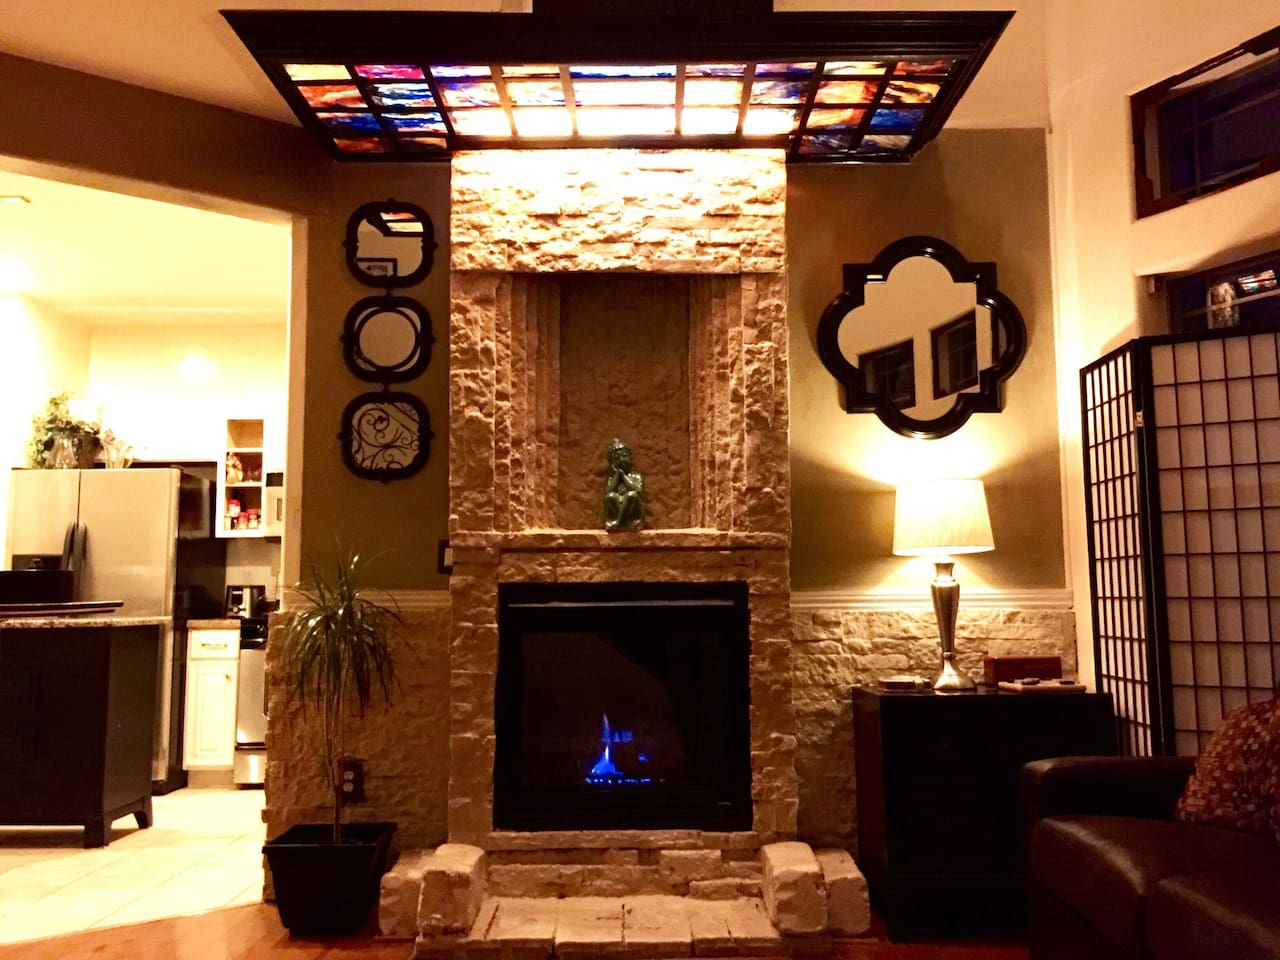 Our gorgeous custom made stone fireplace is the centerpiece of the living room.